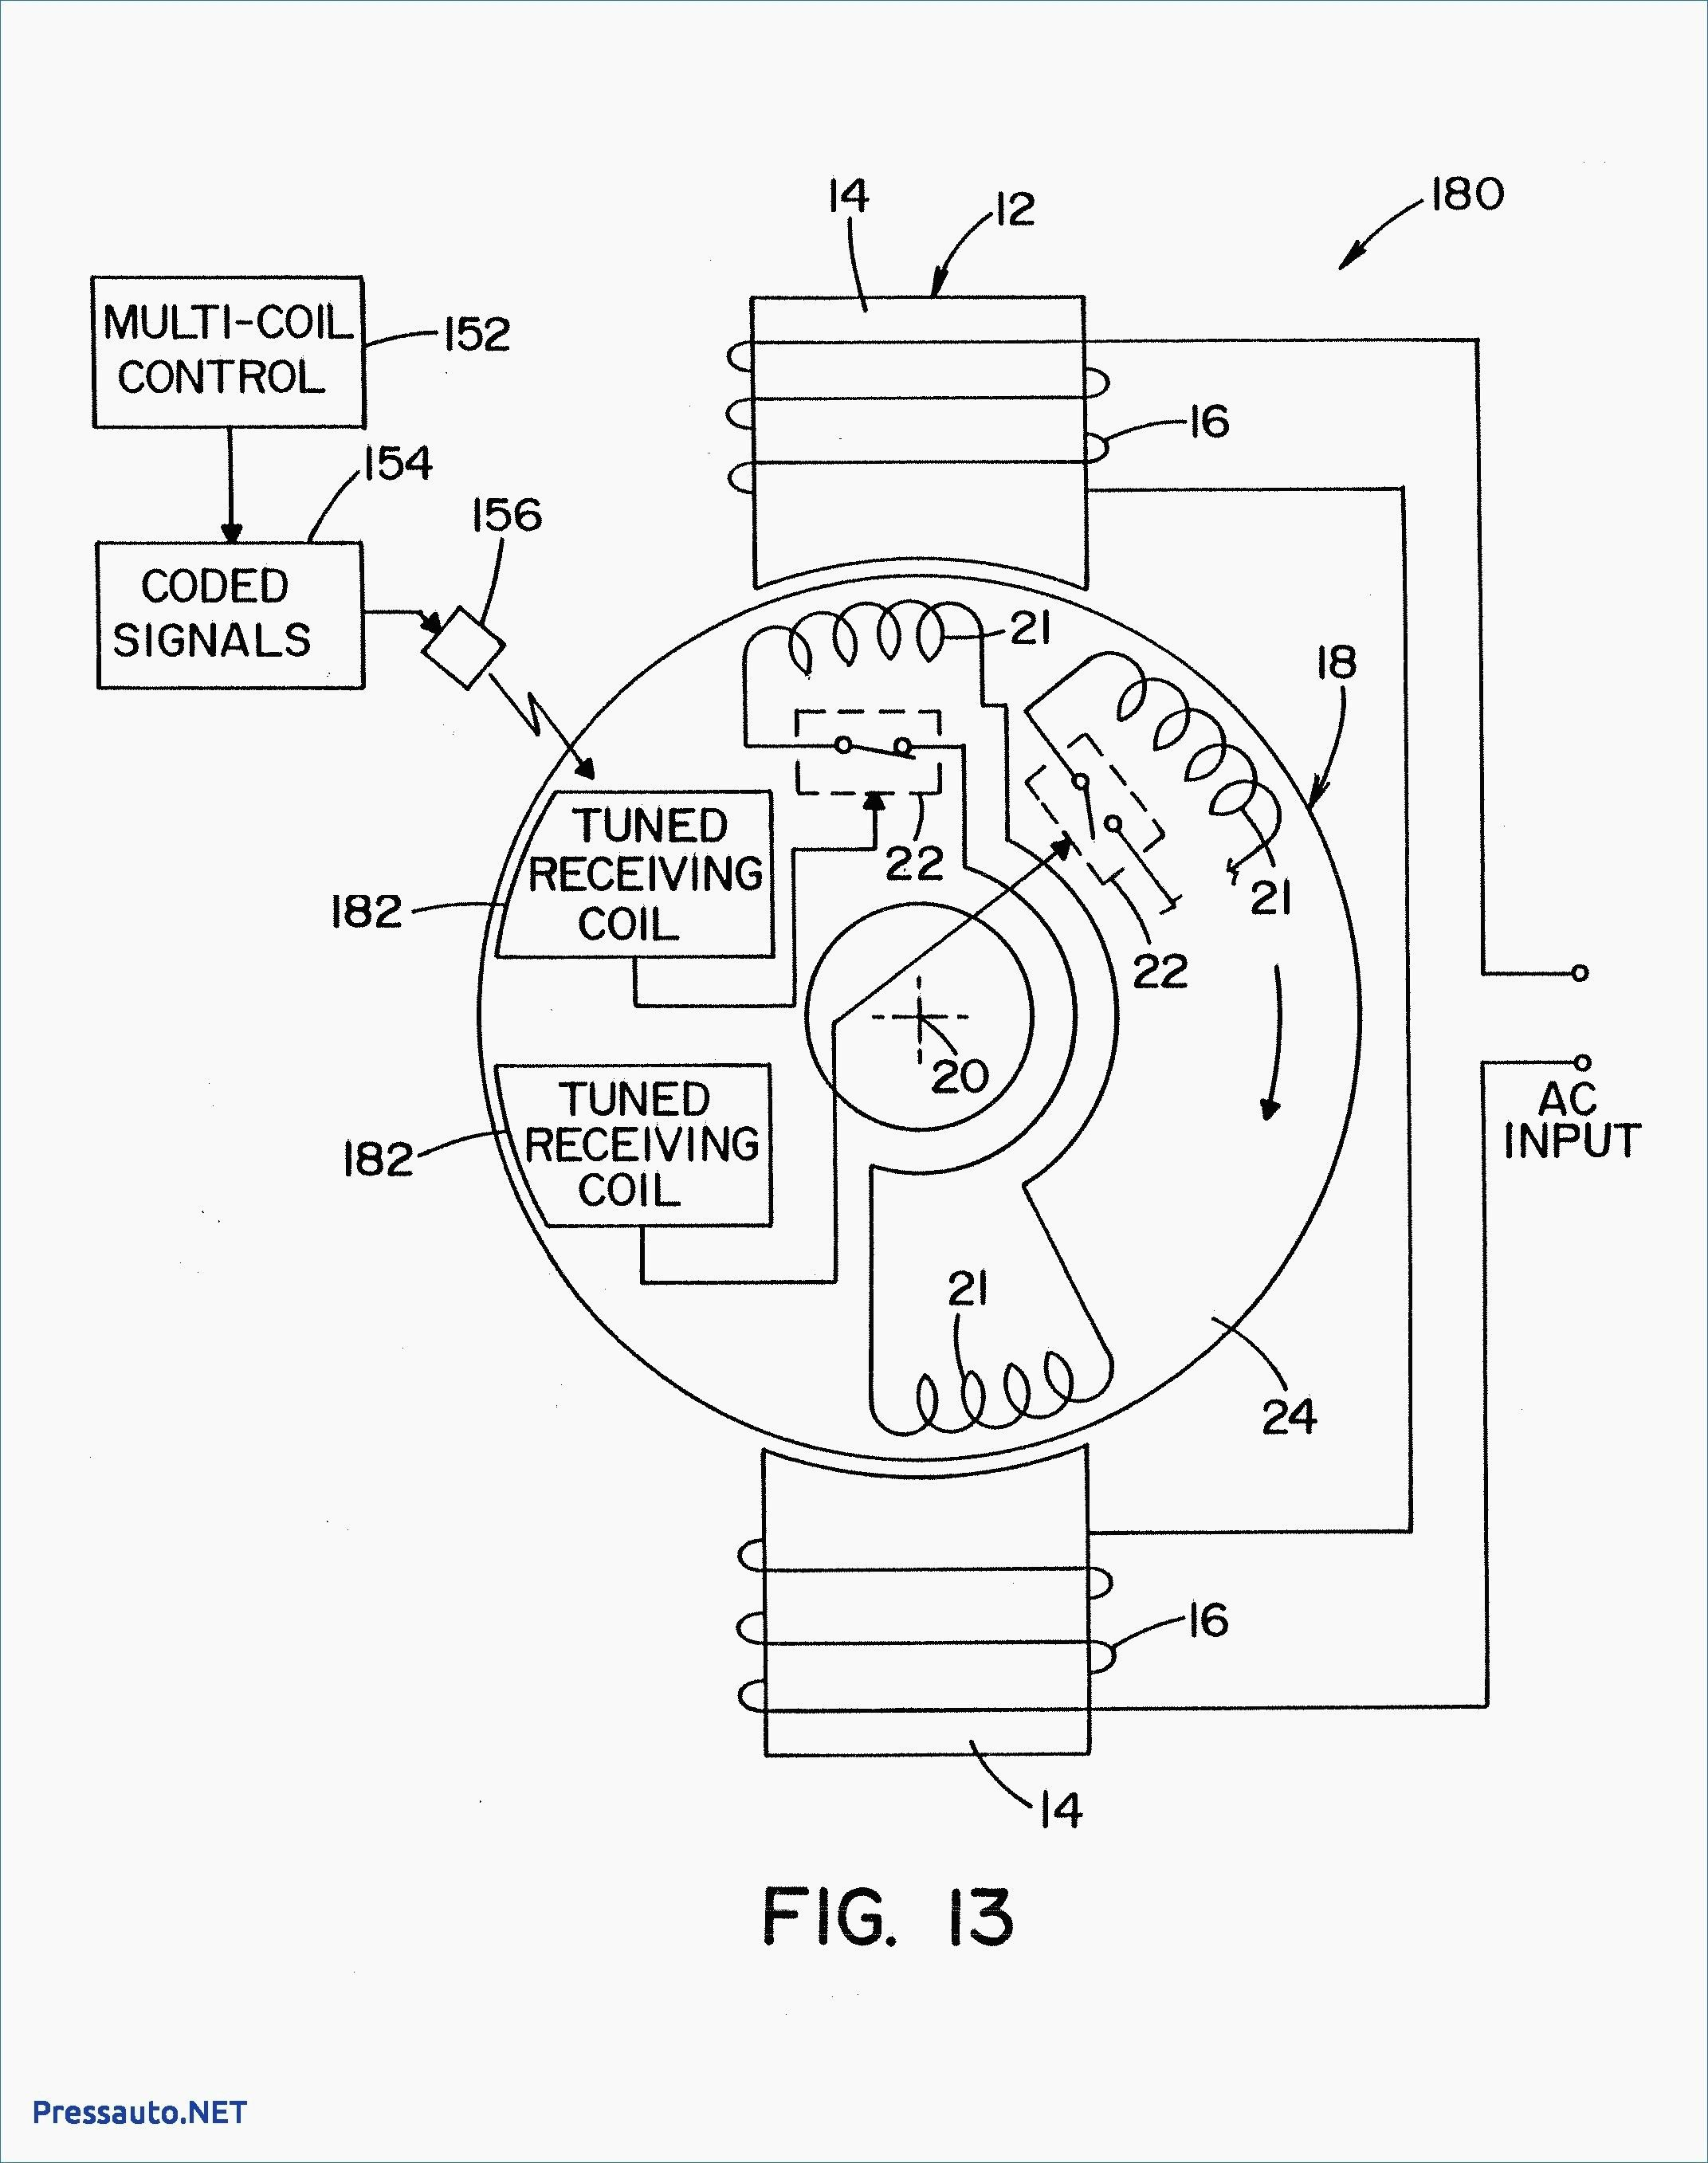 New Auto Gate Motor Wiring Diagram